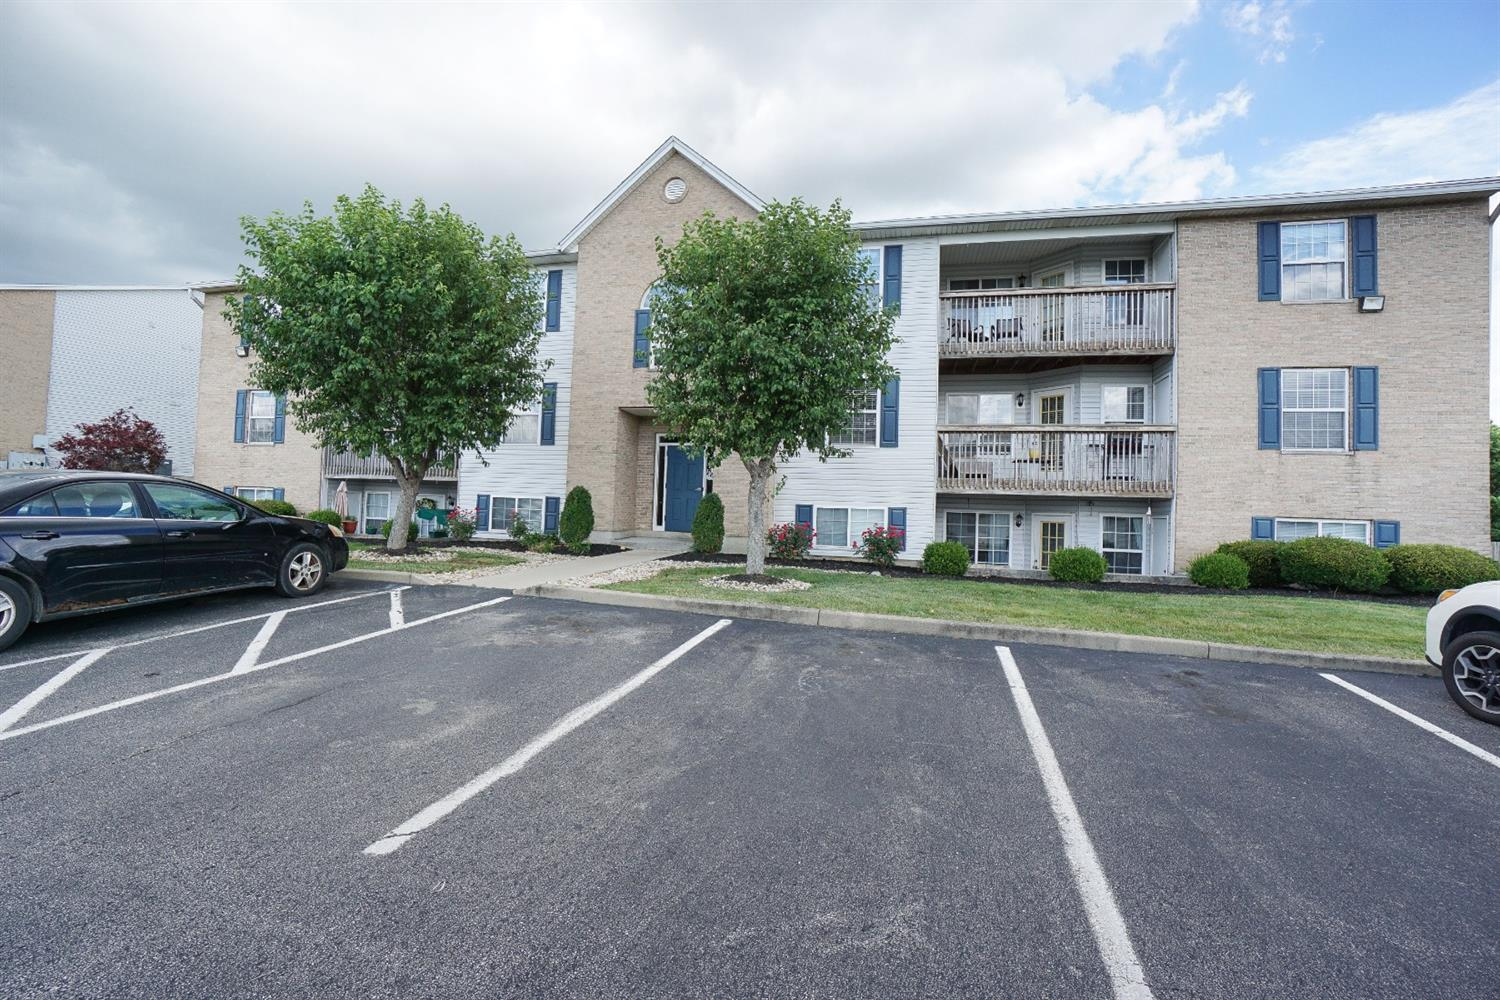 Property for sale at 100 Rough Way Unit: 6, Lebanon,  Ohio 45036